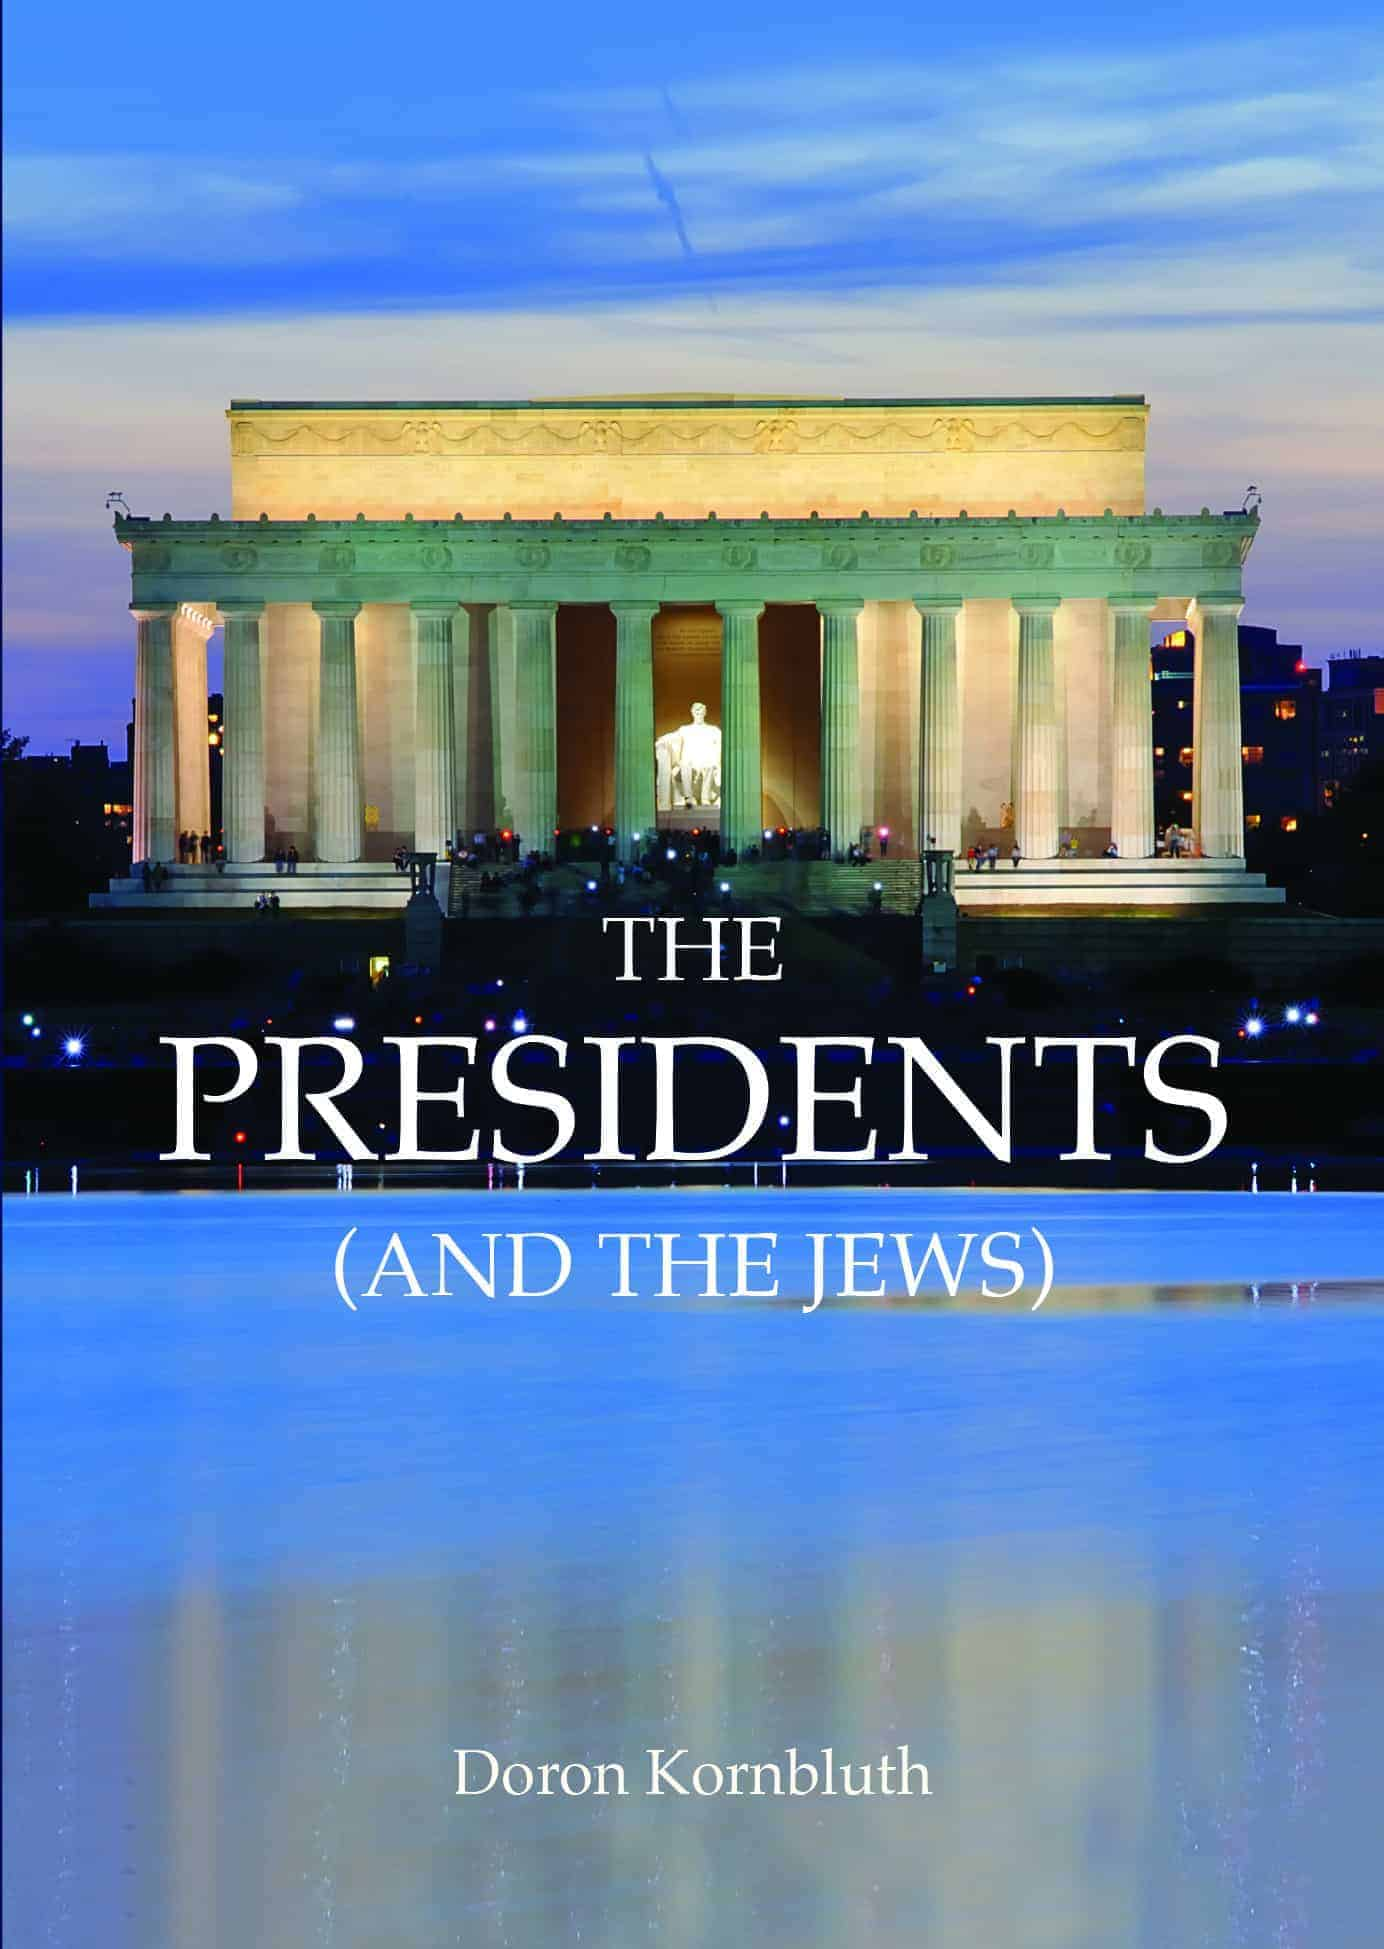 The Presidents (and the Jews)